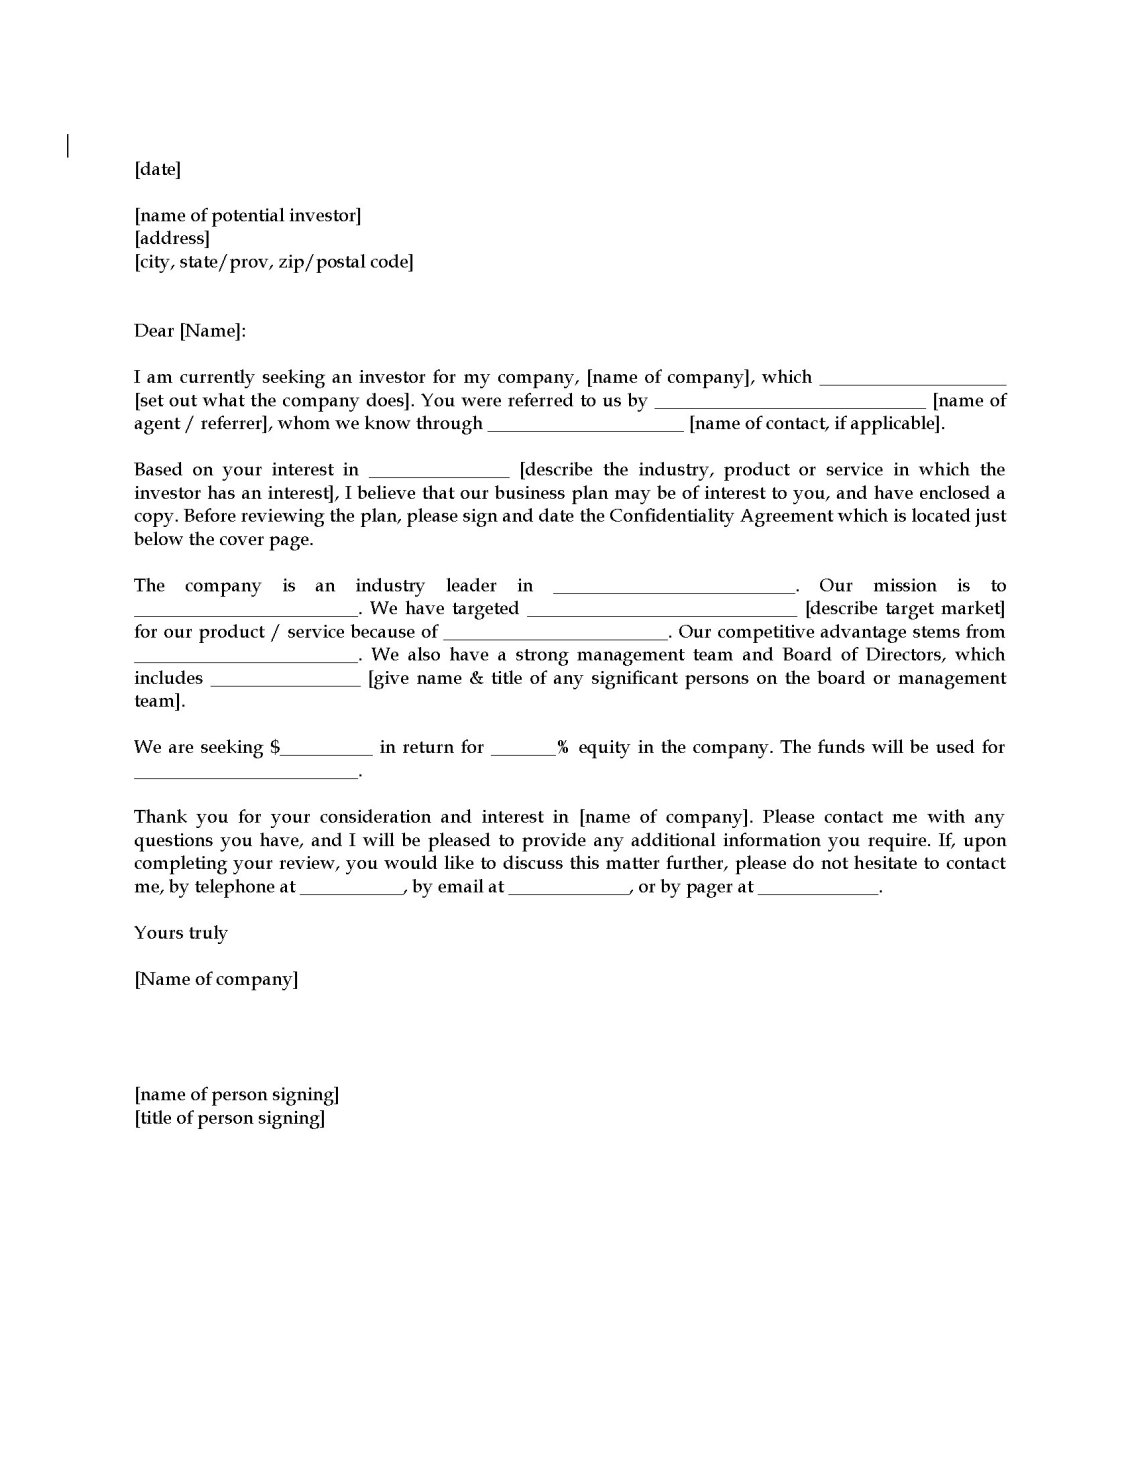 Doc624786 Executive Summary Cover Letter What Do Hiring – Executive Summary Cover Letter